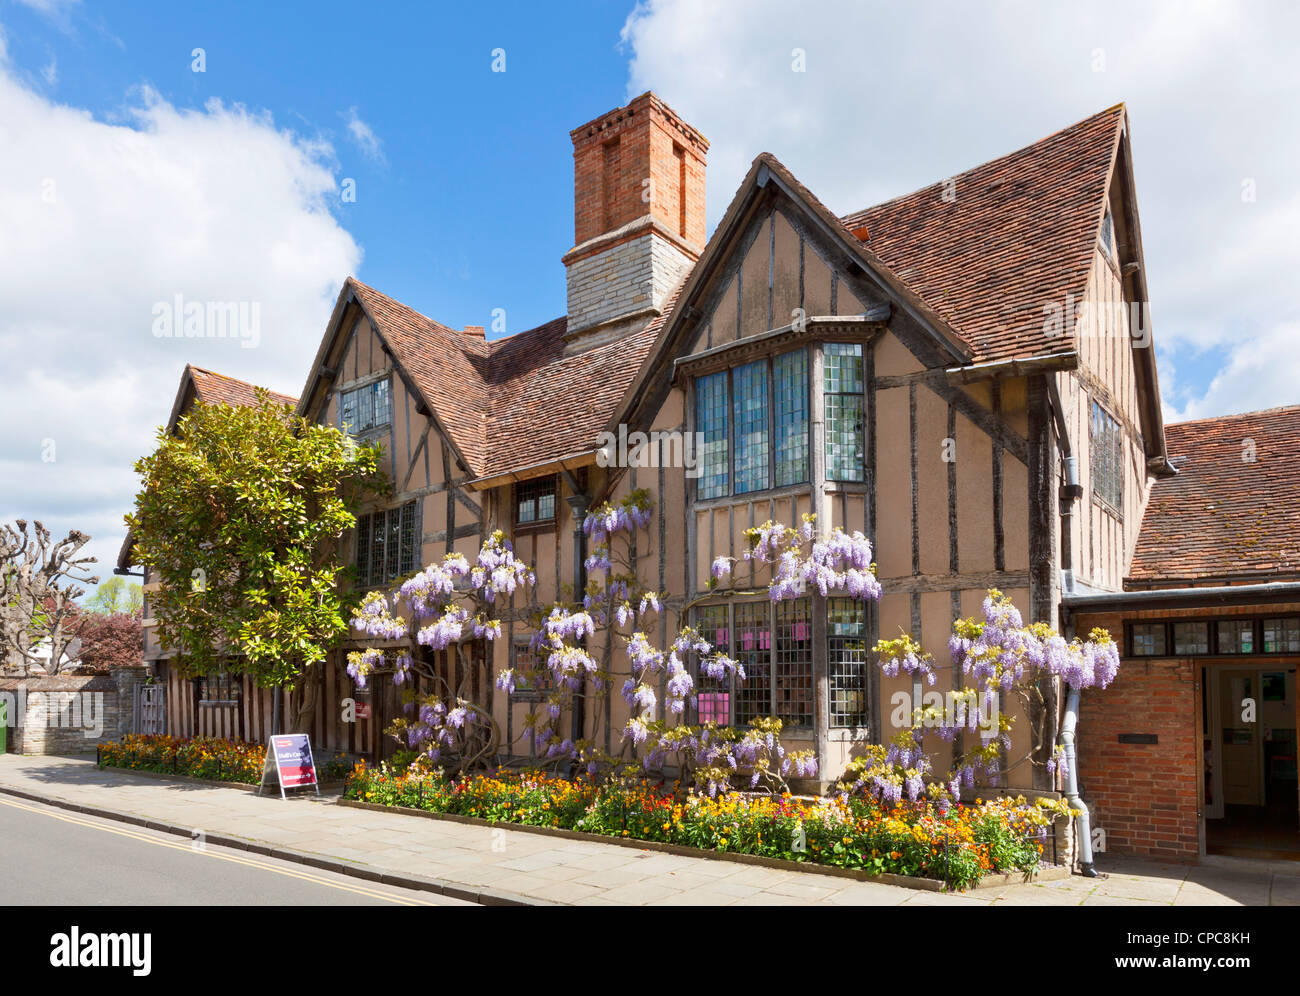 Hall's croft was home to Shakespeare's daughter Susanna and her husband, Stratford upon Avon Warwickshire - Stock Image